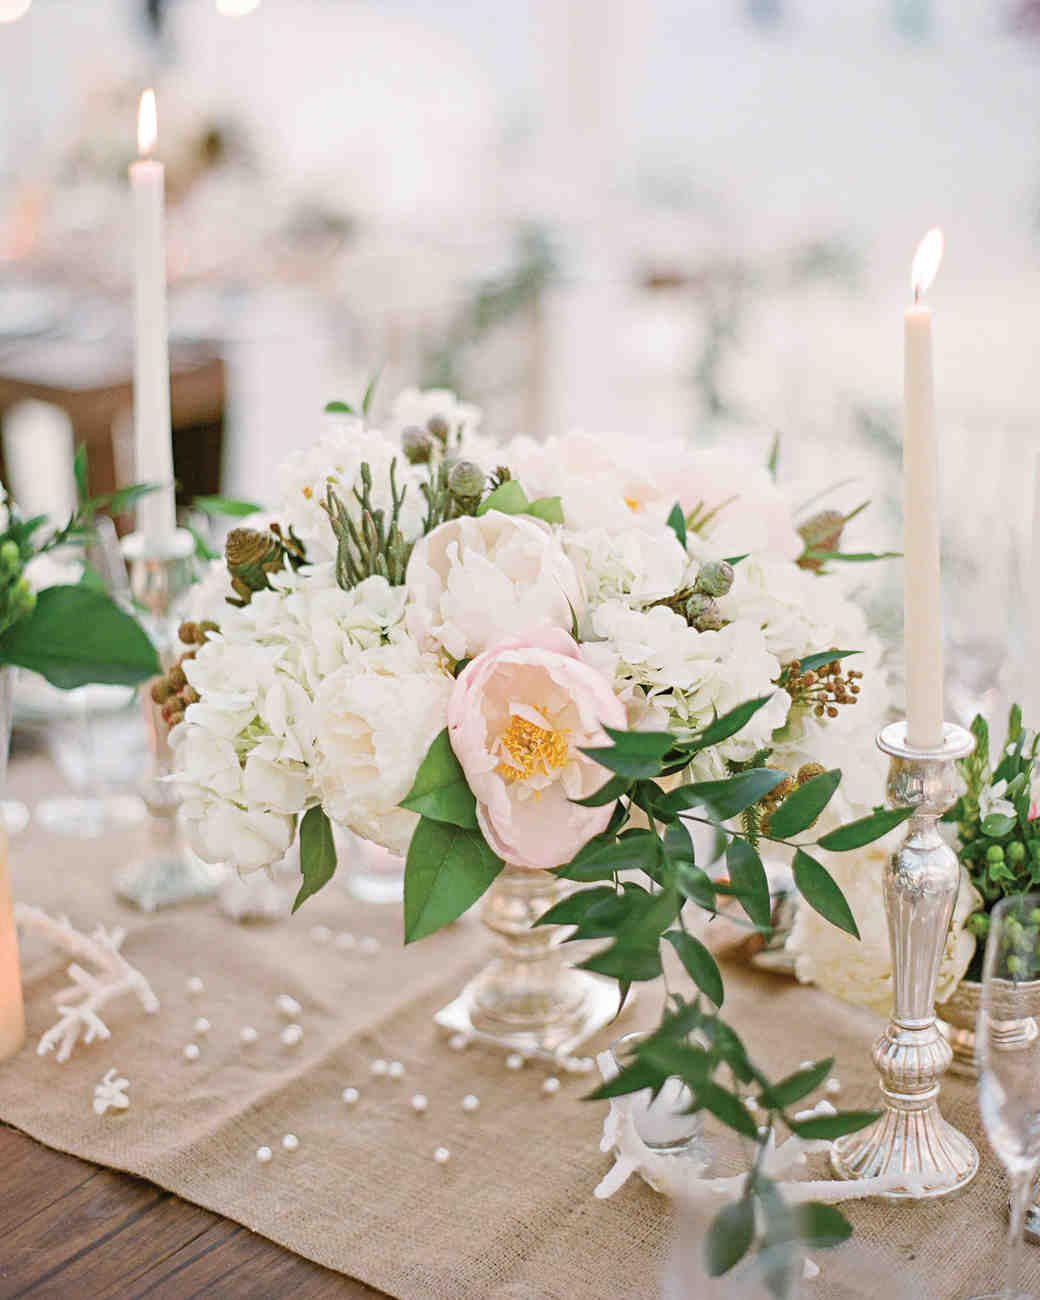 Wedding Centerpieces: The Prettiest Peony Wedding Centerpieces